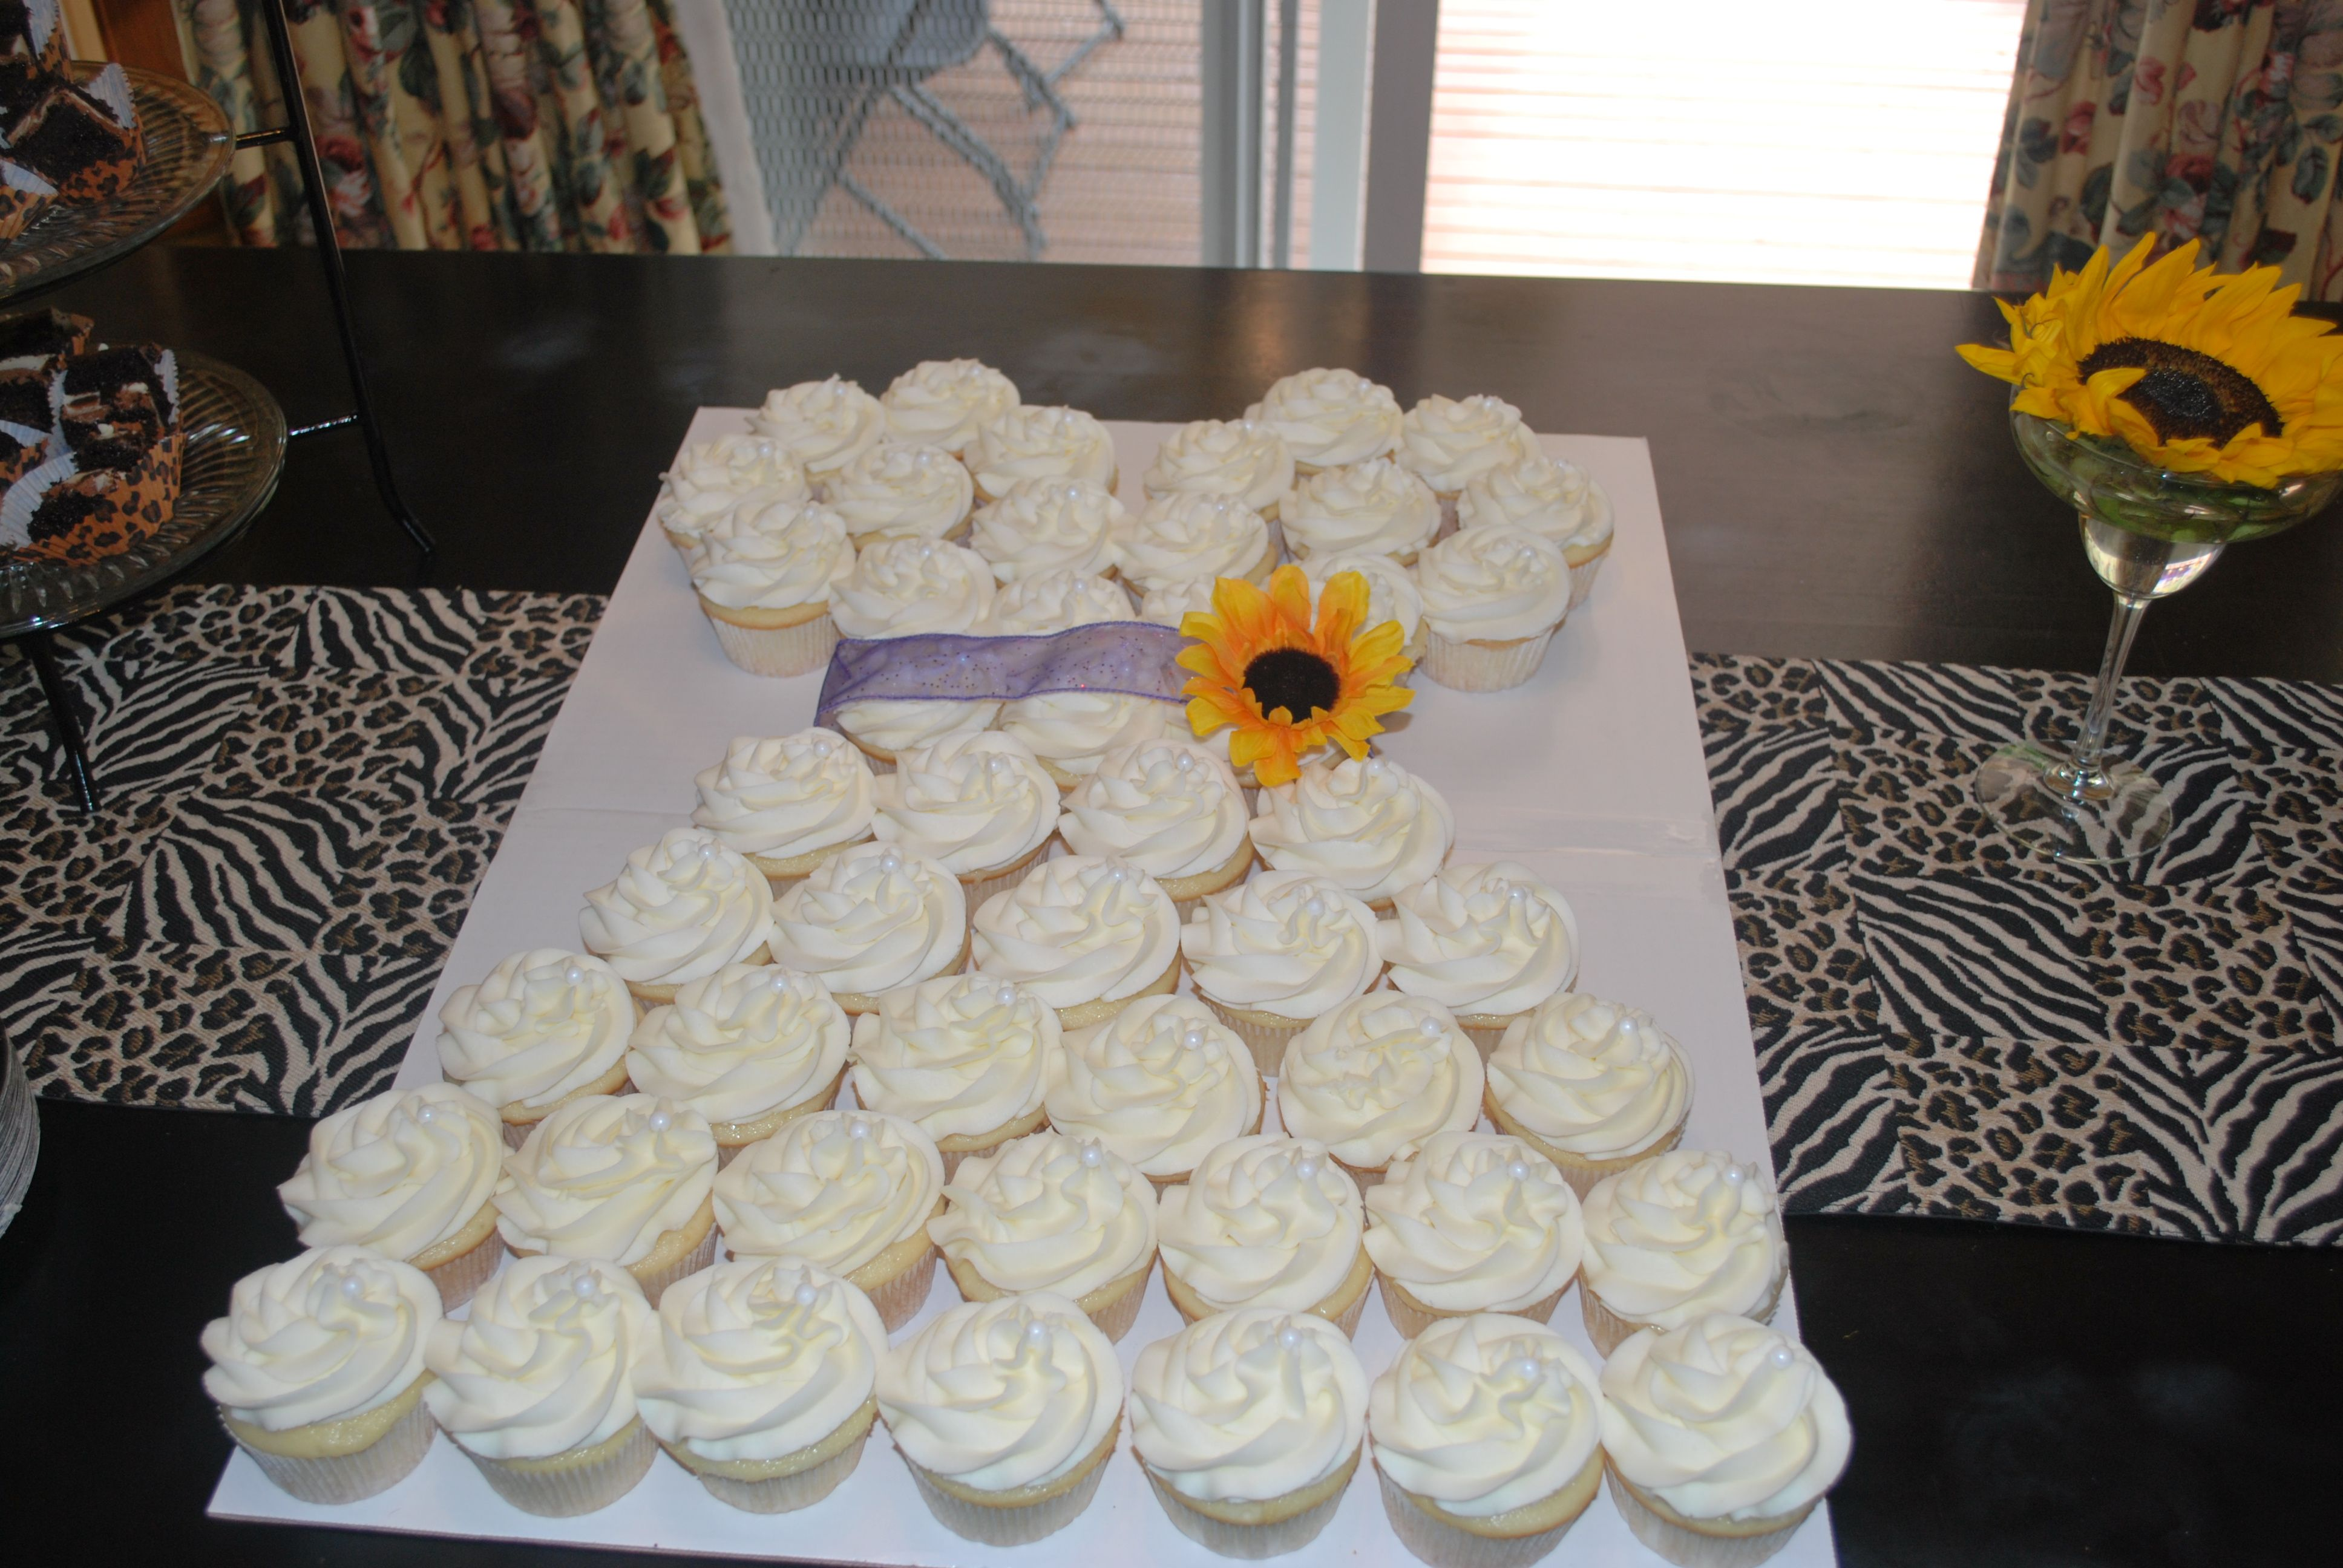 Bridal Shower Cupcakes in the shape of a wedding dress